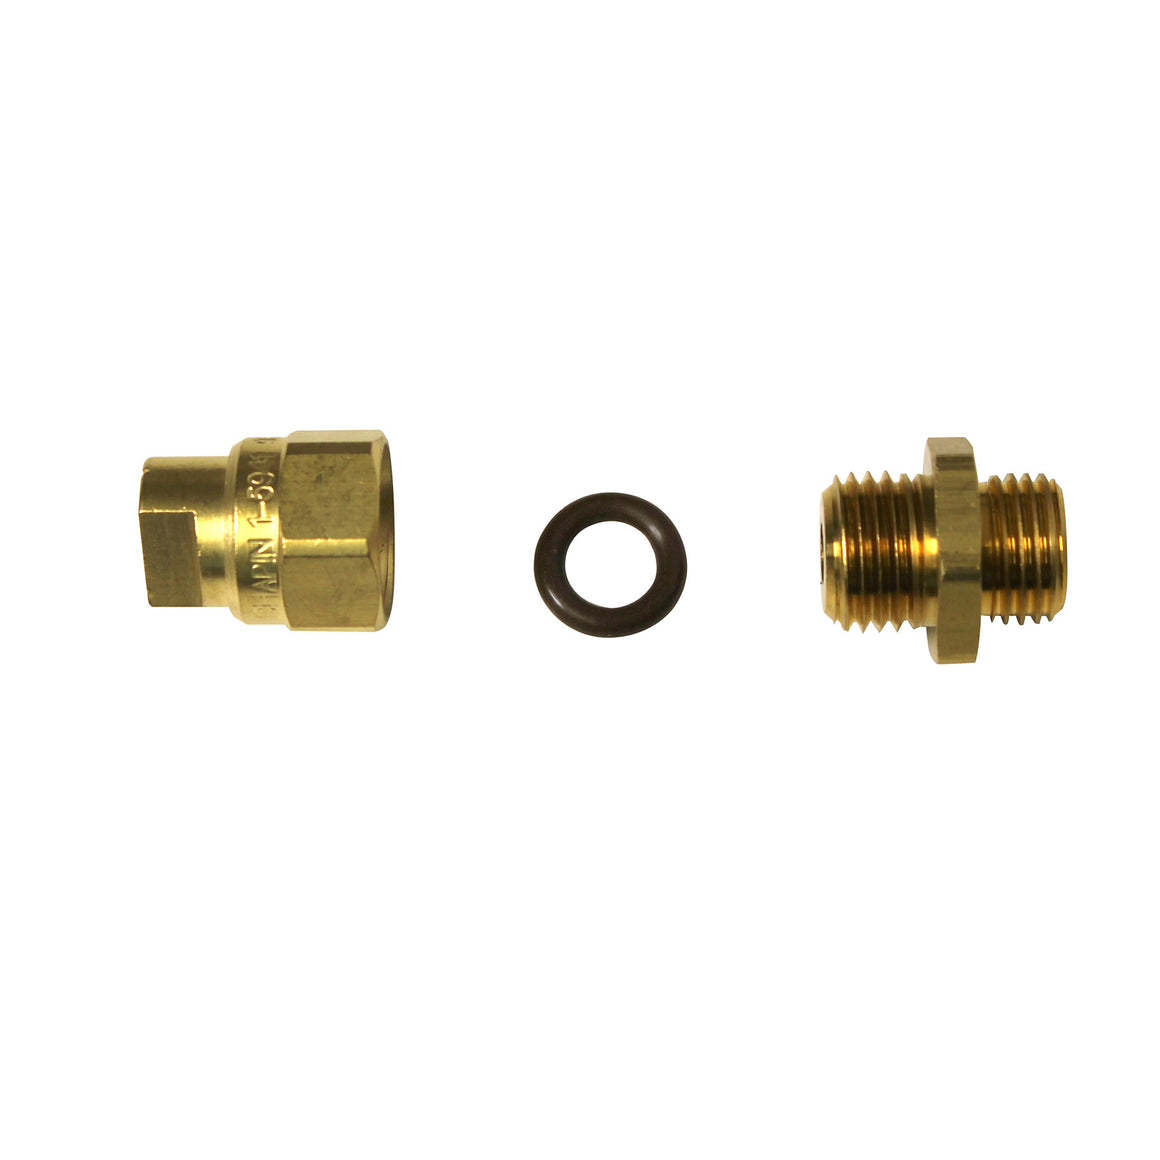 Chapin 1949 Spare - Brass Nozzle Tip 1.0 GPM buy online from Metex Online